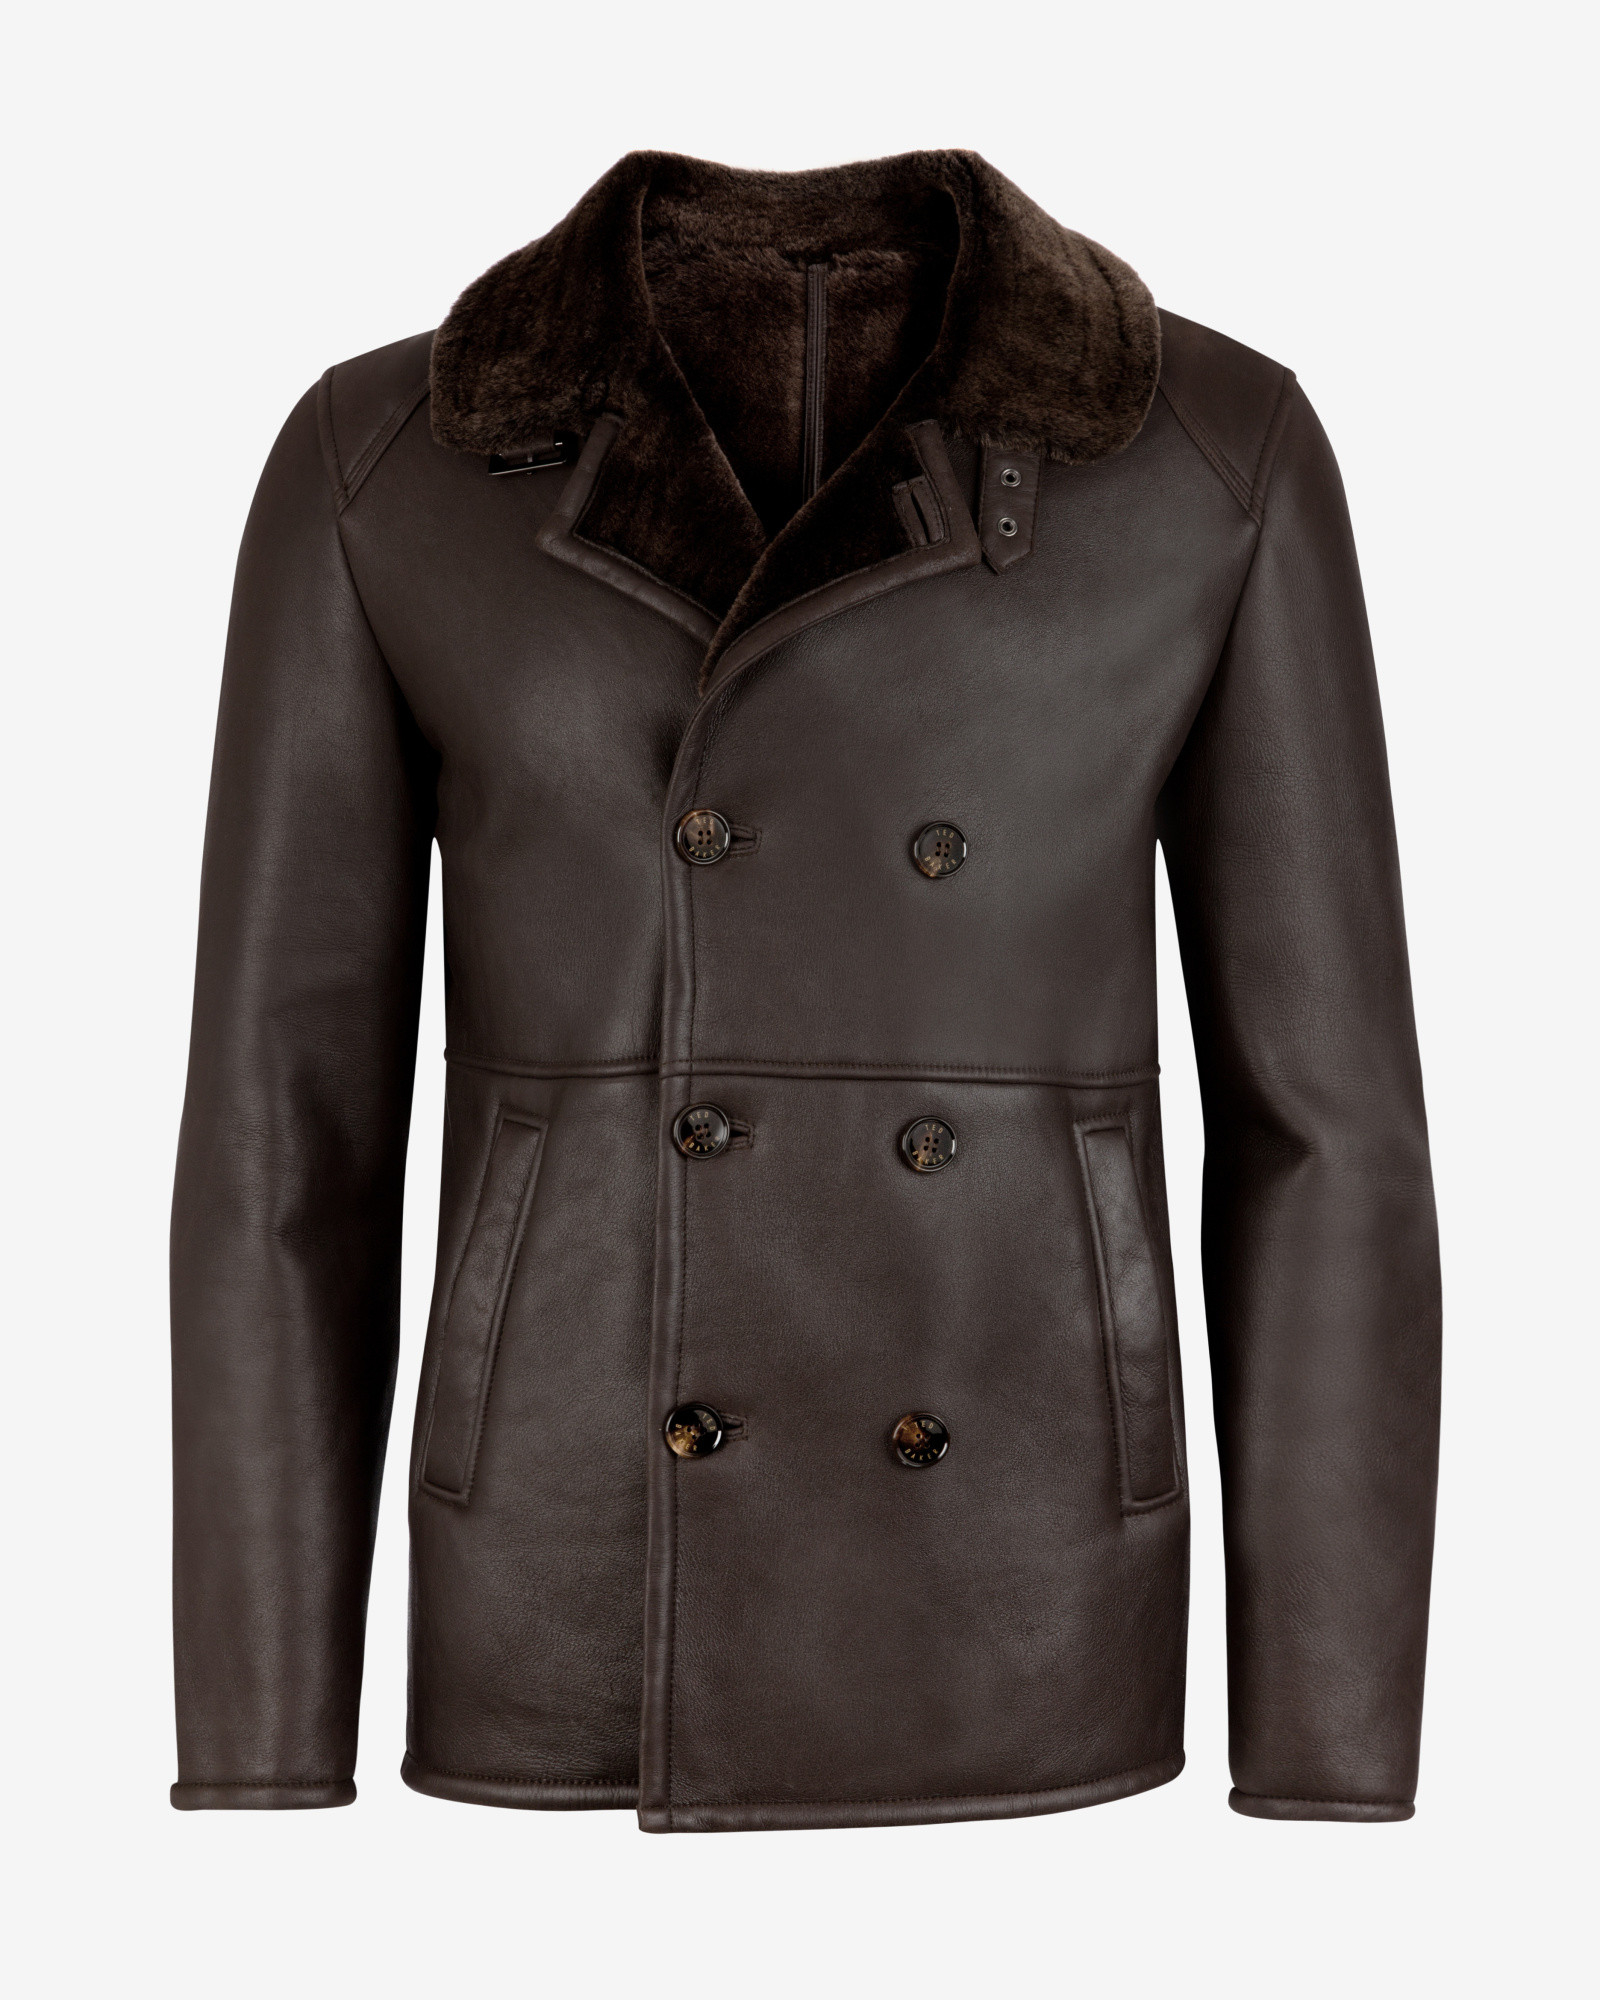 Ted Baker Deluxe Shearling Leather Pea Coat In Brown For